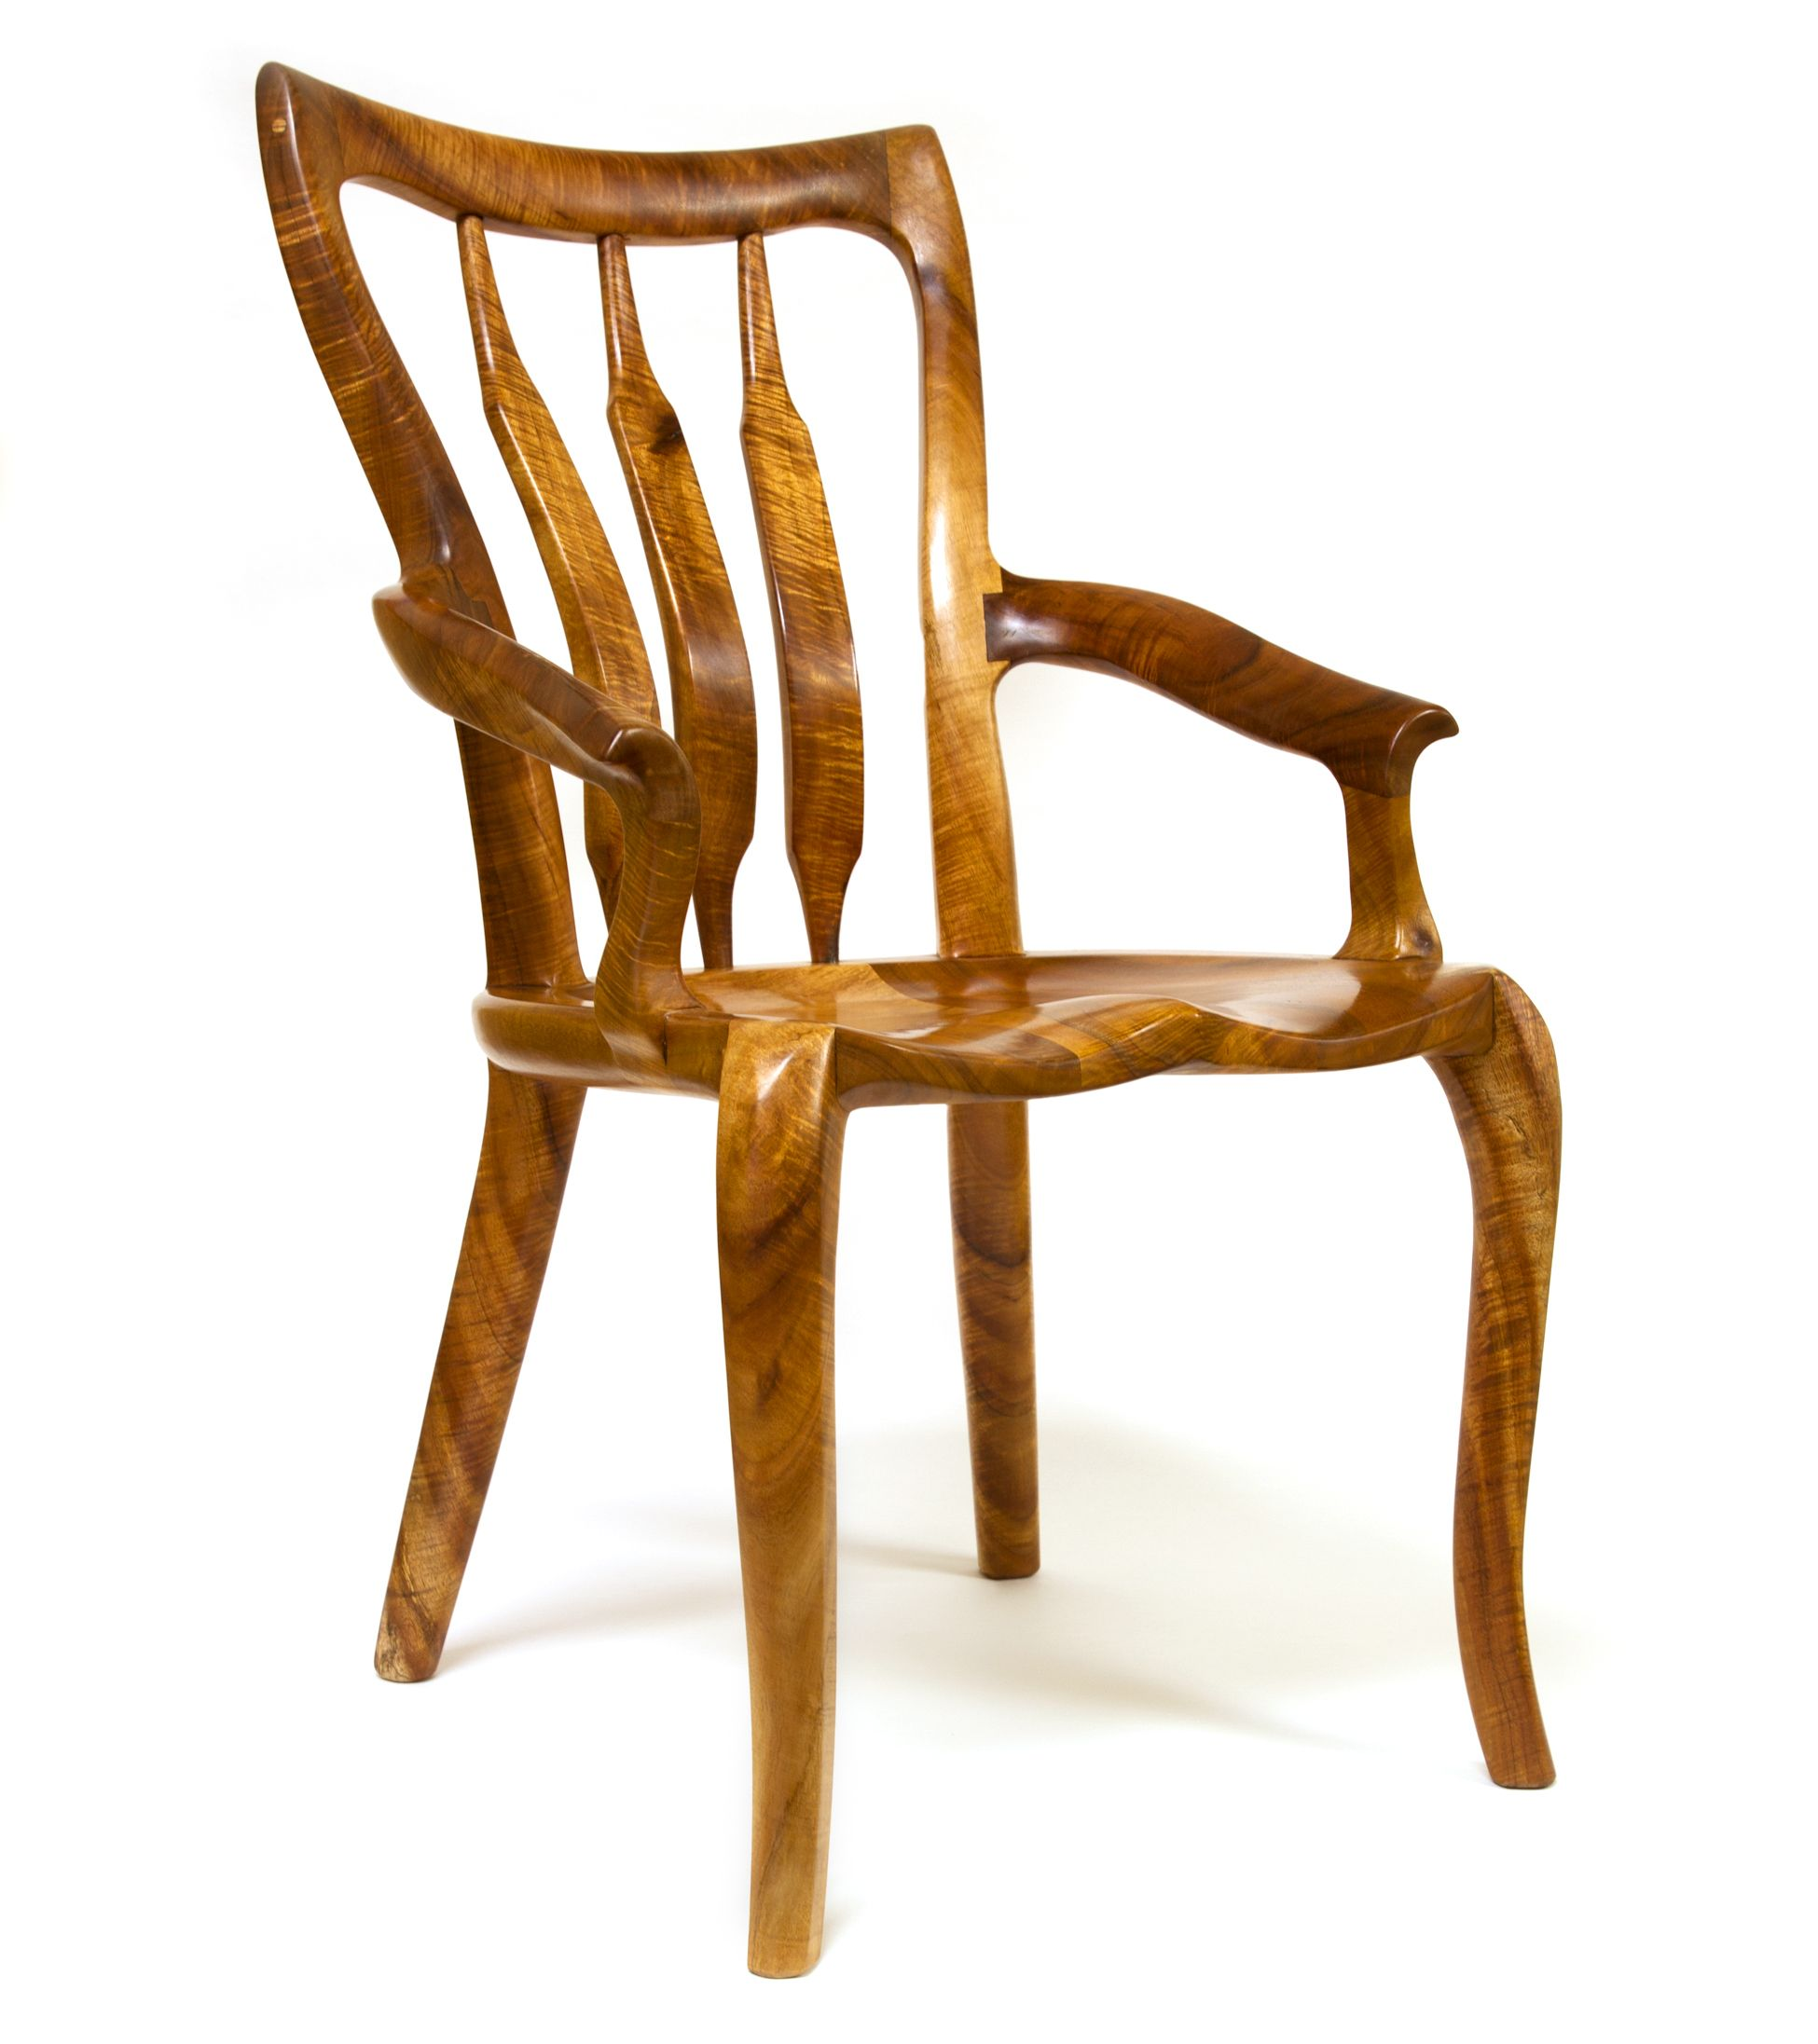 Sculpted Chair, With Arms, In Koa